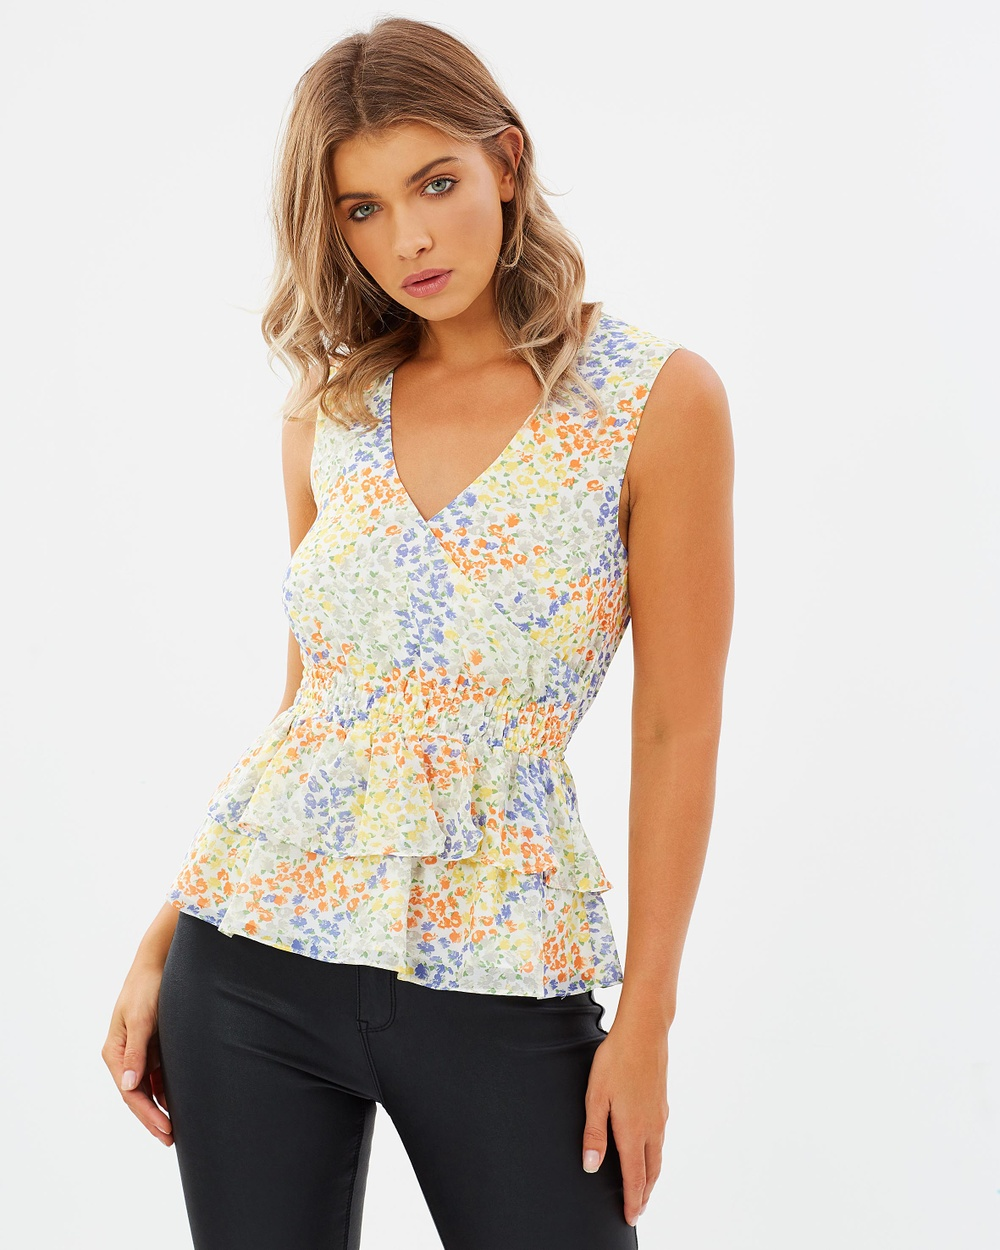 Atmos & Here ICONIC EXCLUSIVE Quinn Frill Peplum Top Tops Block Colour Floral ICONIC EXCLUSIVE Quinn Frill Peplum Top